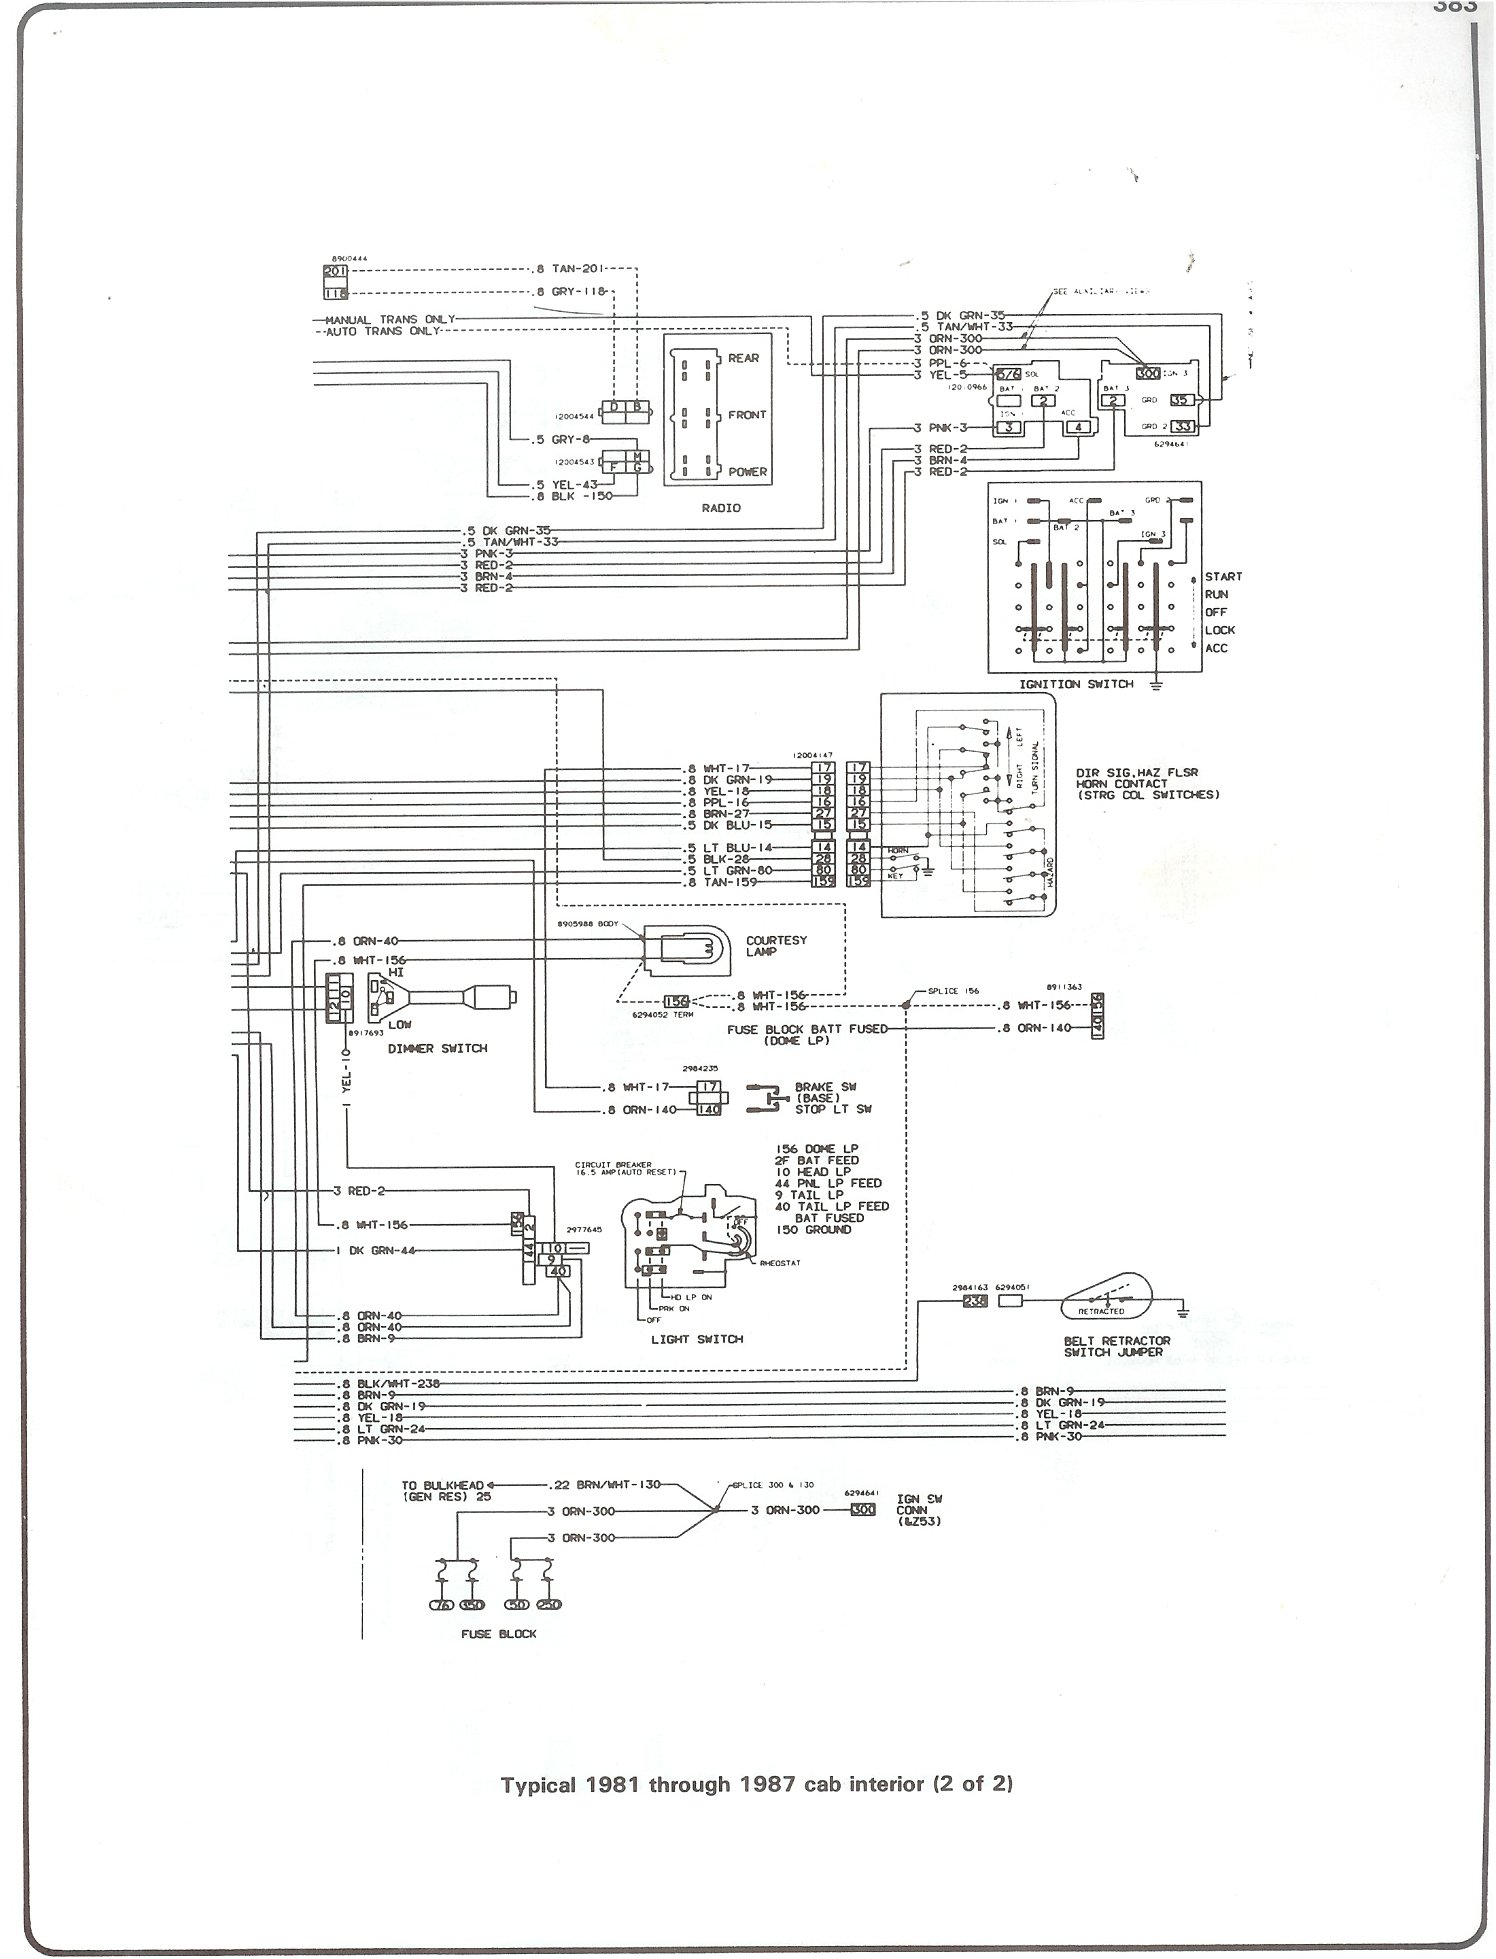 Stearing Colom Wiring Diagram 1992 S10 Reinvent Your 2000 Gmc W4500 Heater Chevy Steering Column Data Schema U2022 Rh Serasa Co Lighting